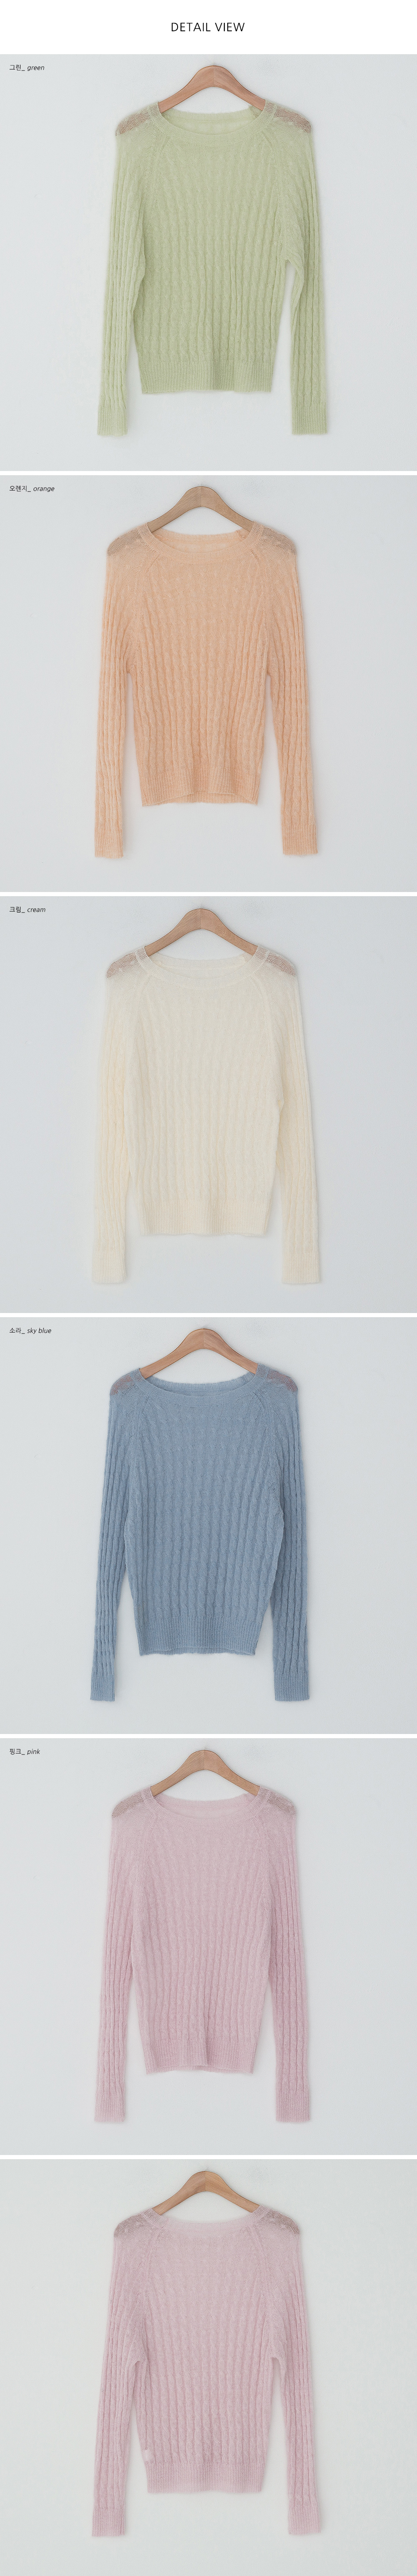 Flory Twisted Booklet Knitwear